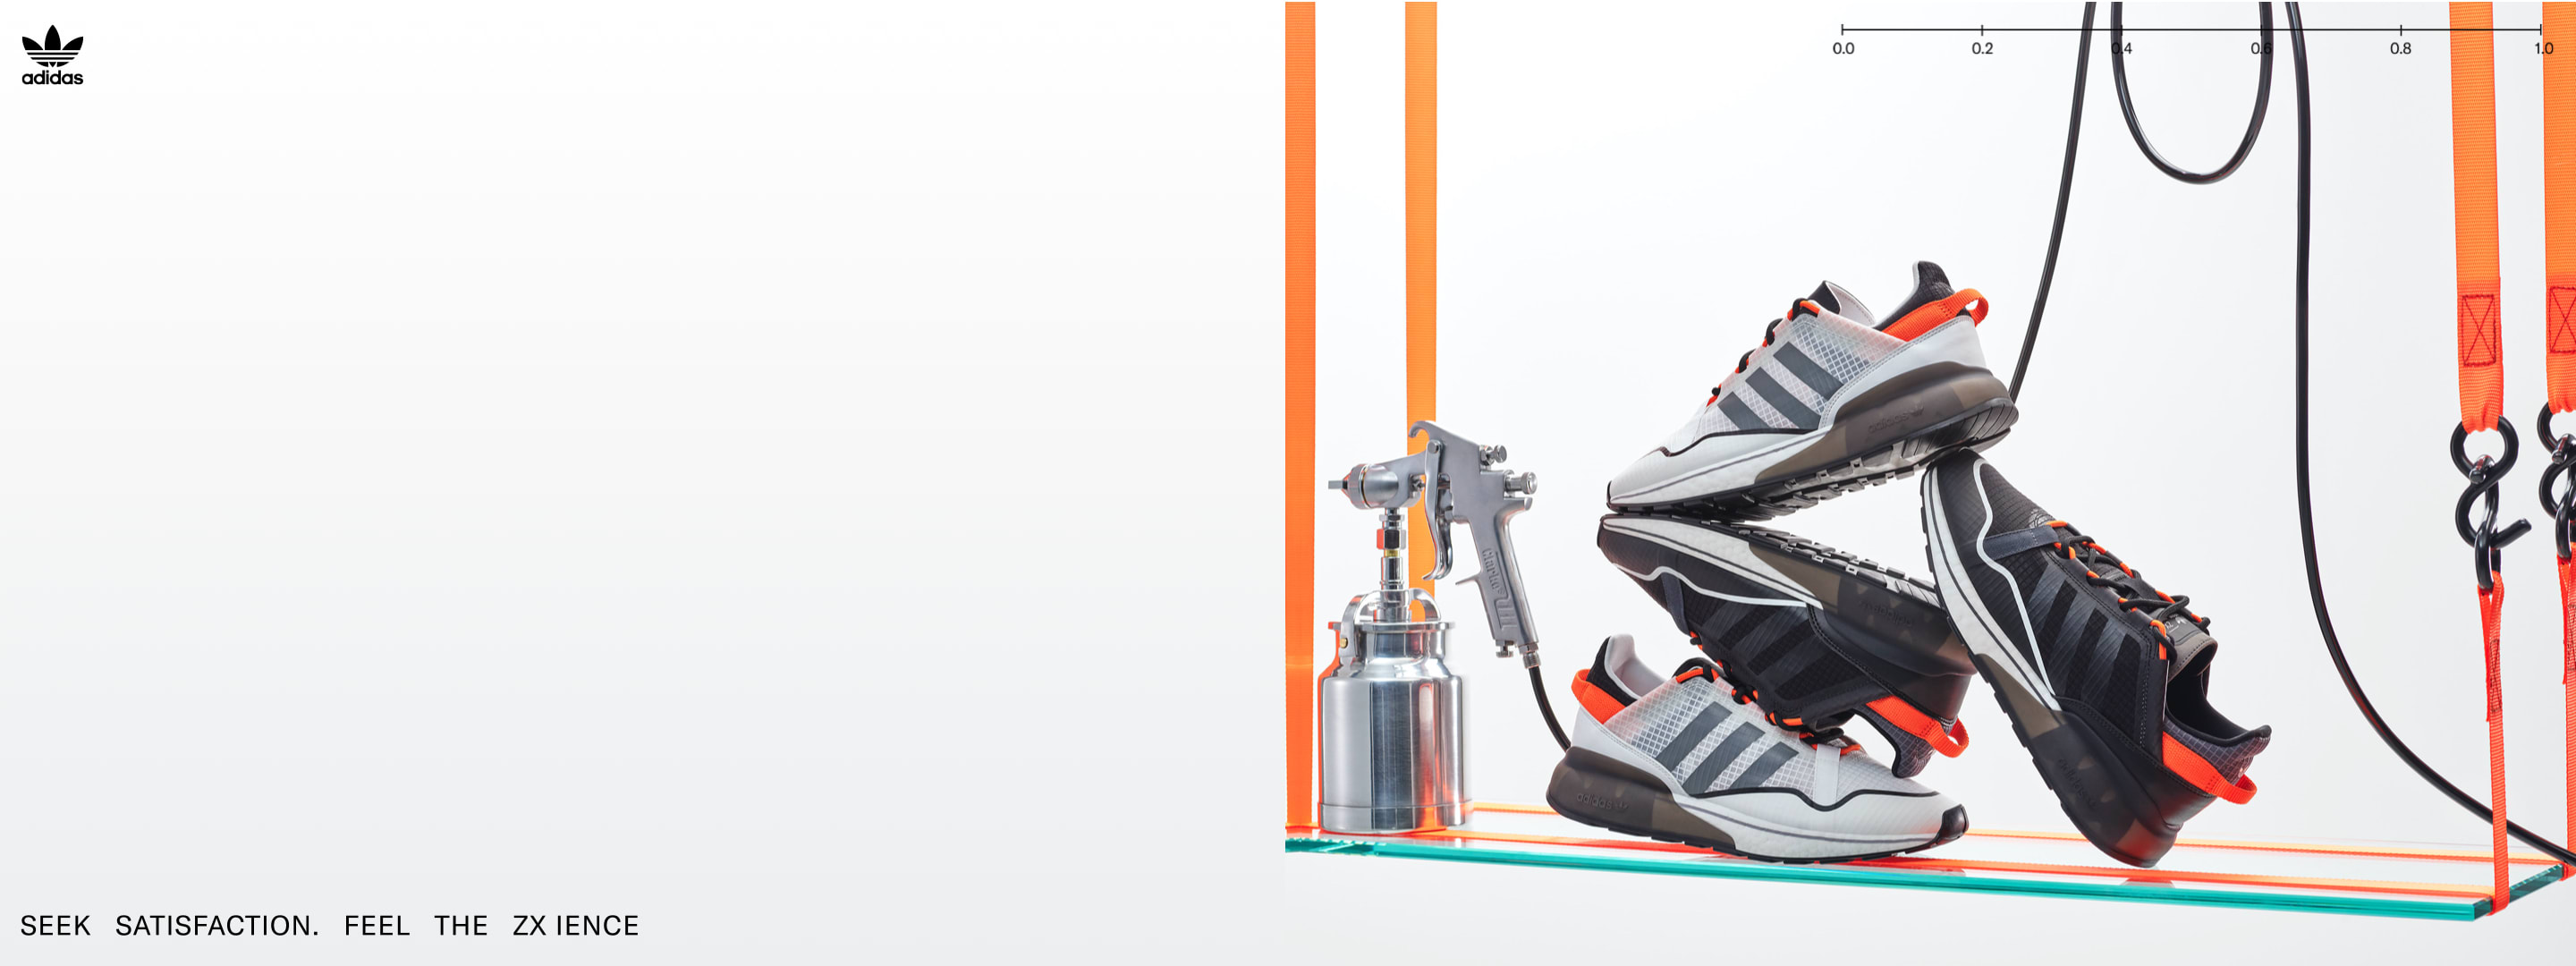 ZX 2K BOOST PURE unisex shoes are shown piled on top of each other in a science lab scene.